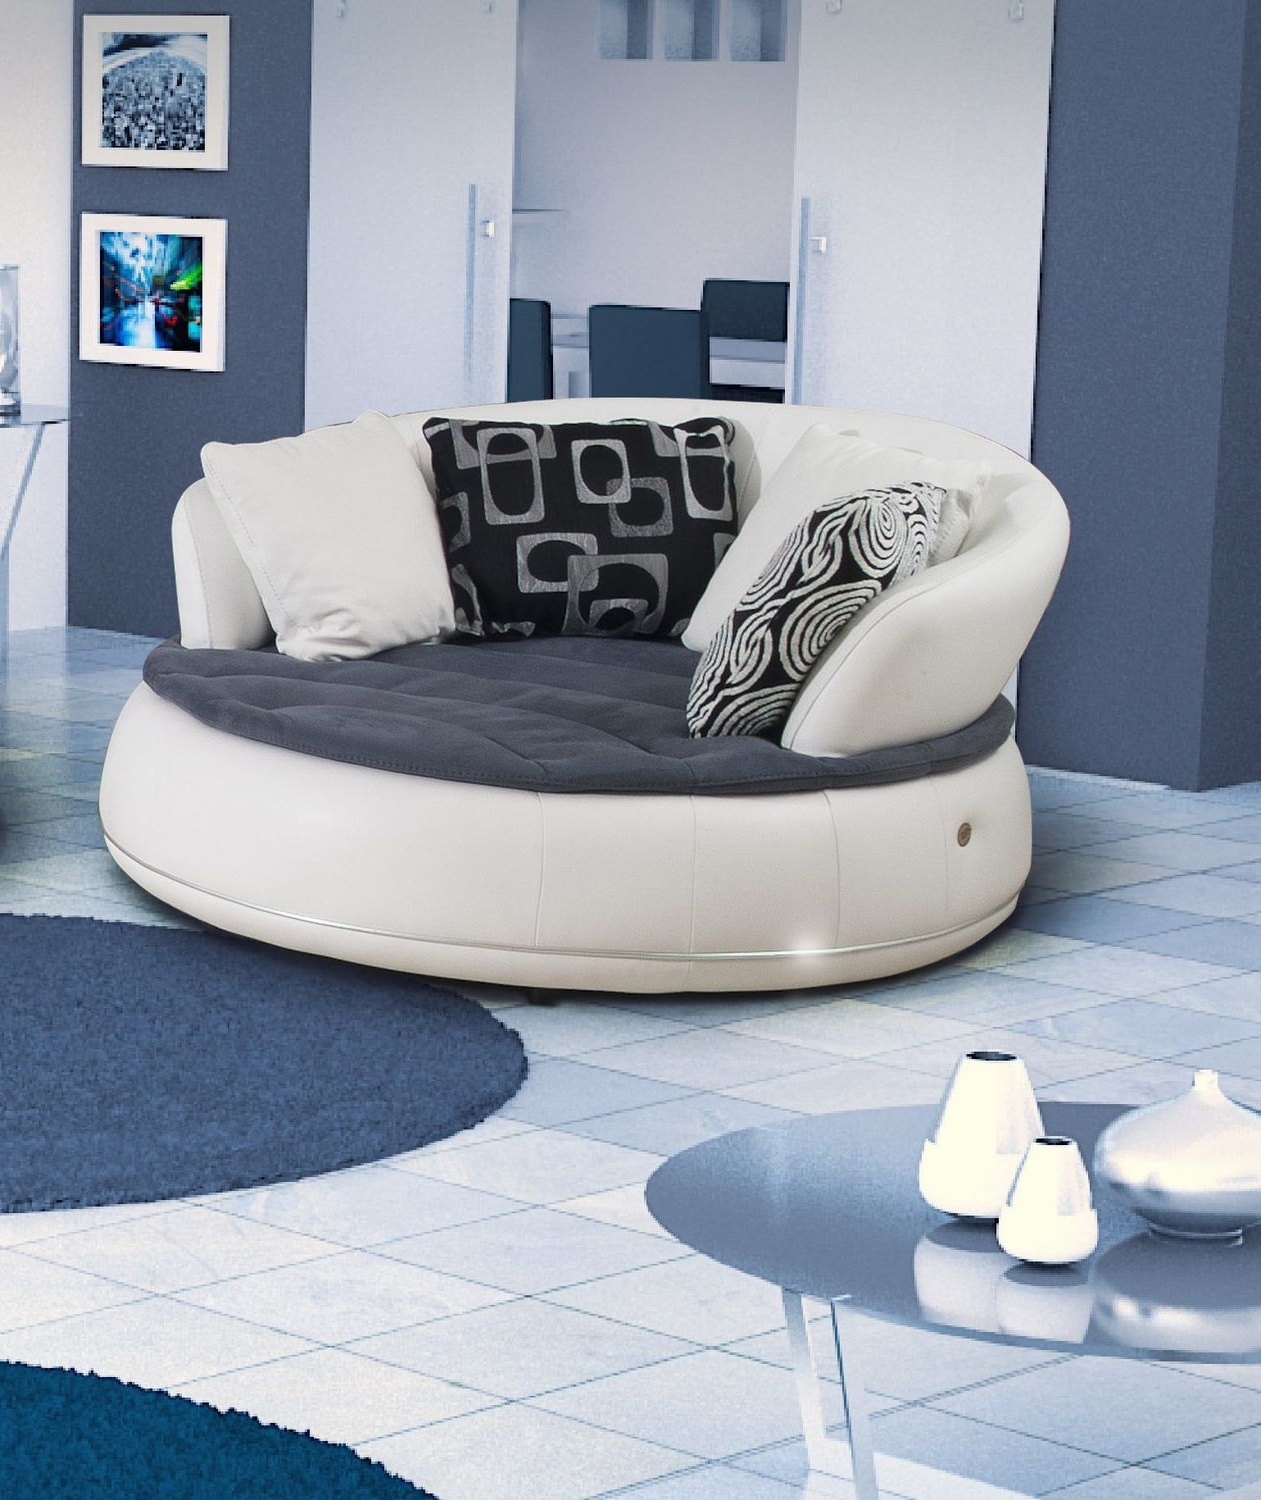 Newest Semicircular Sofa / Round / Contemporary / Leather – Espace – Nieri Pertaining To Semicircular Sofas (View 11 of 20)